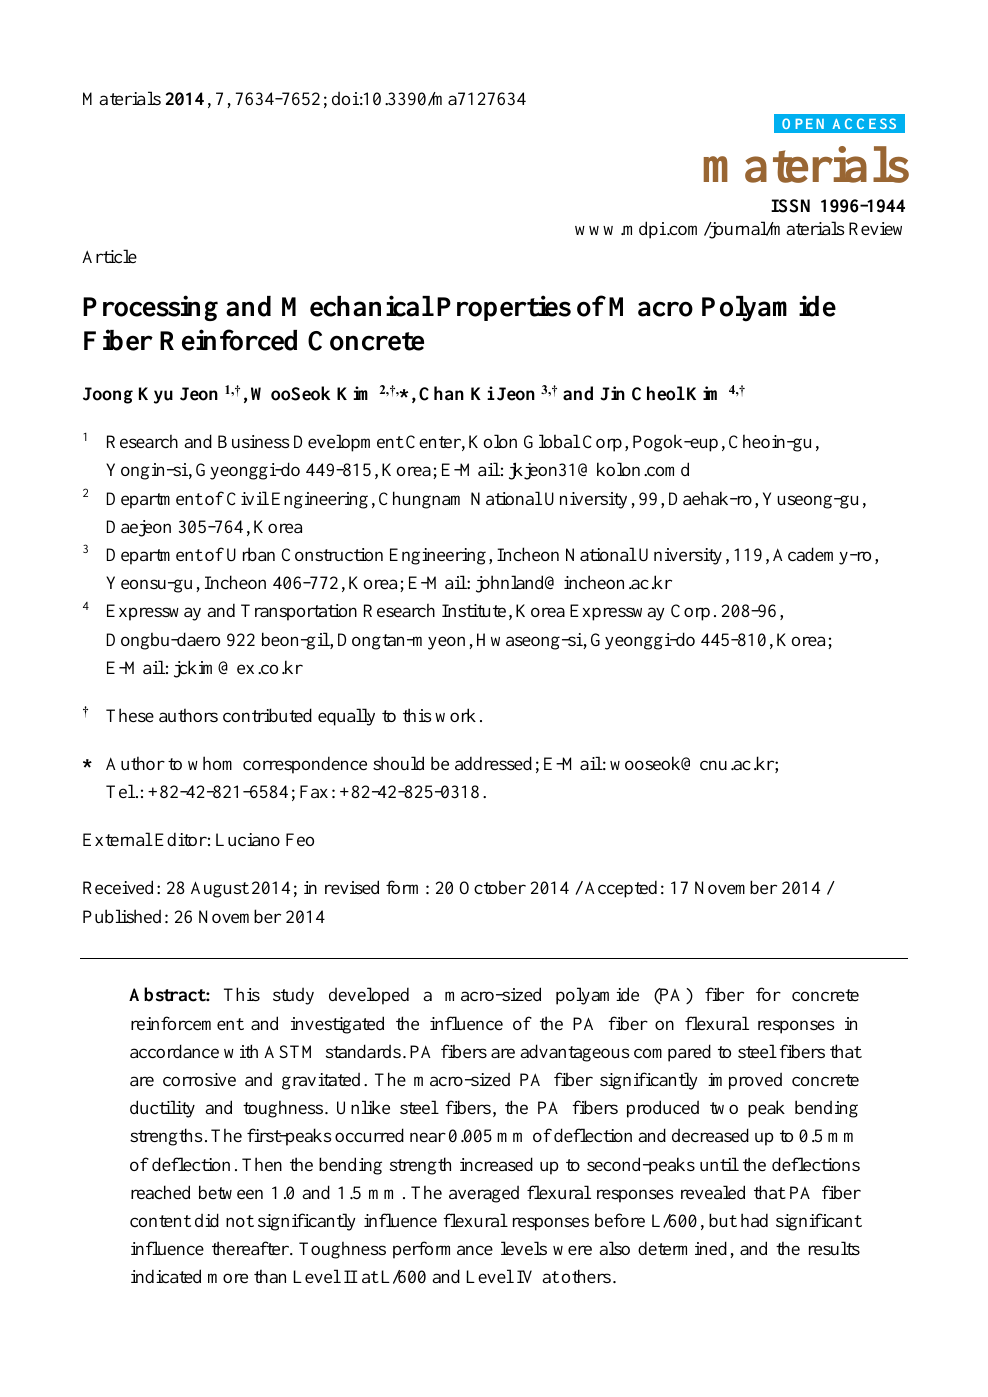 Processing and Mechanical Properties of Macro Polyamide